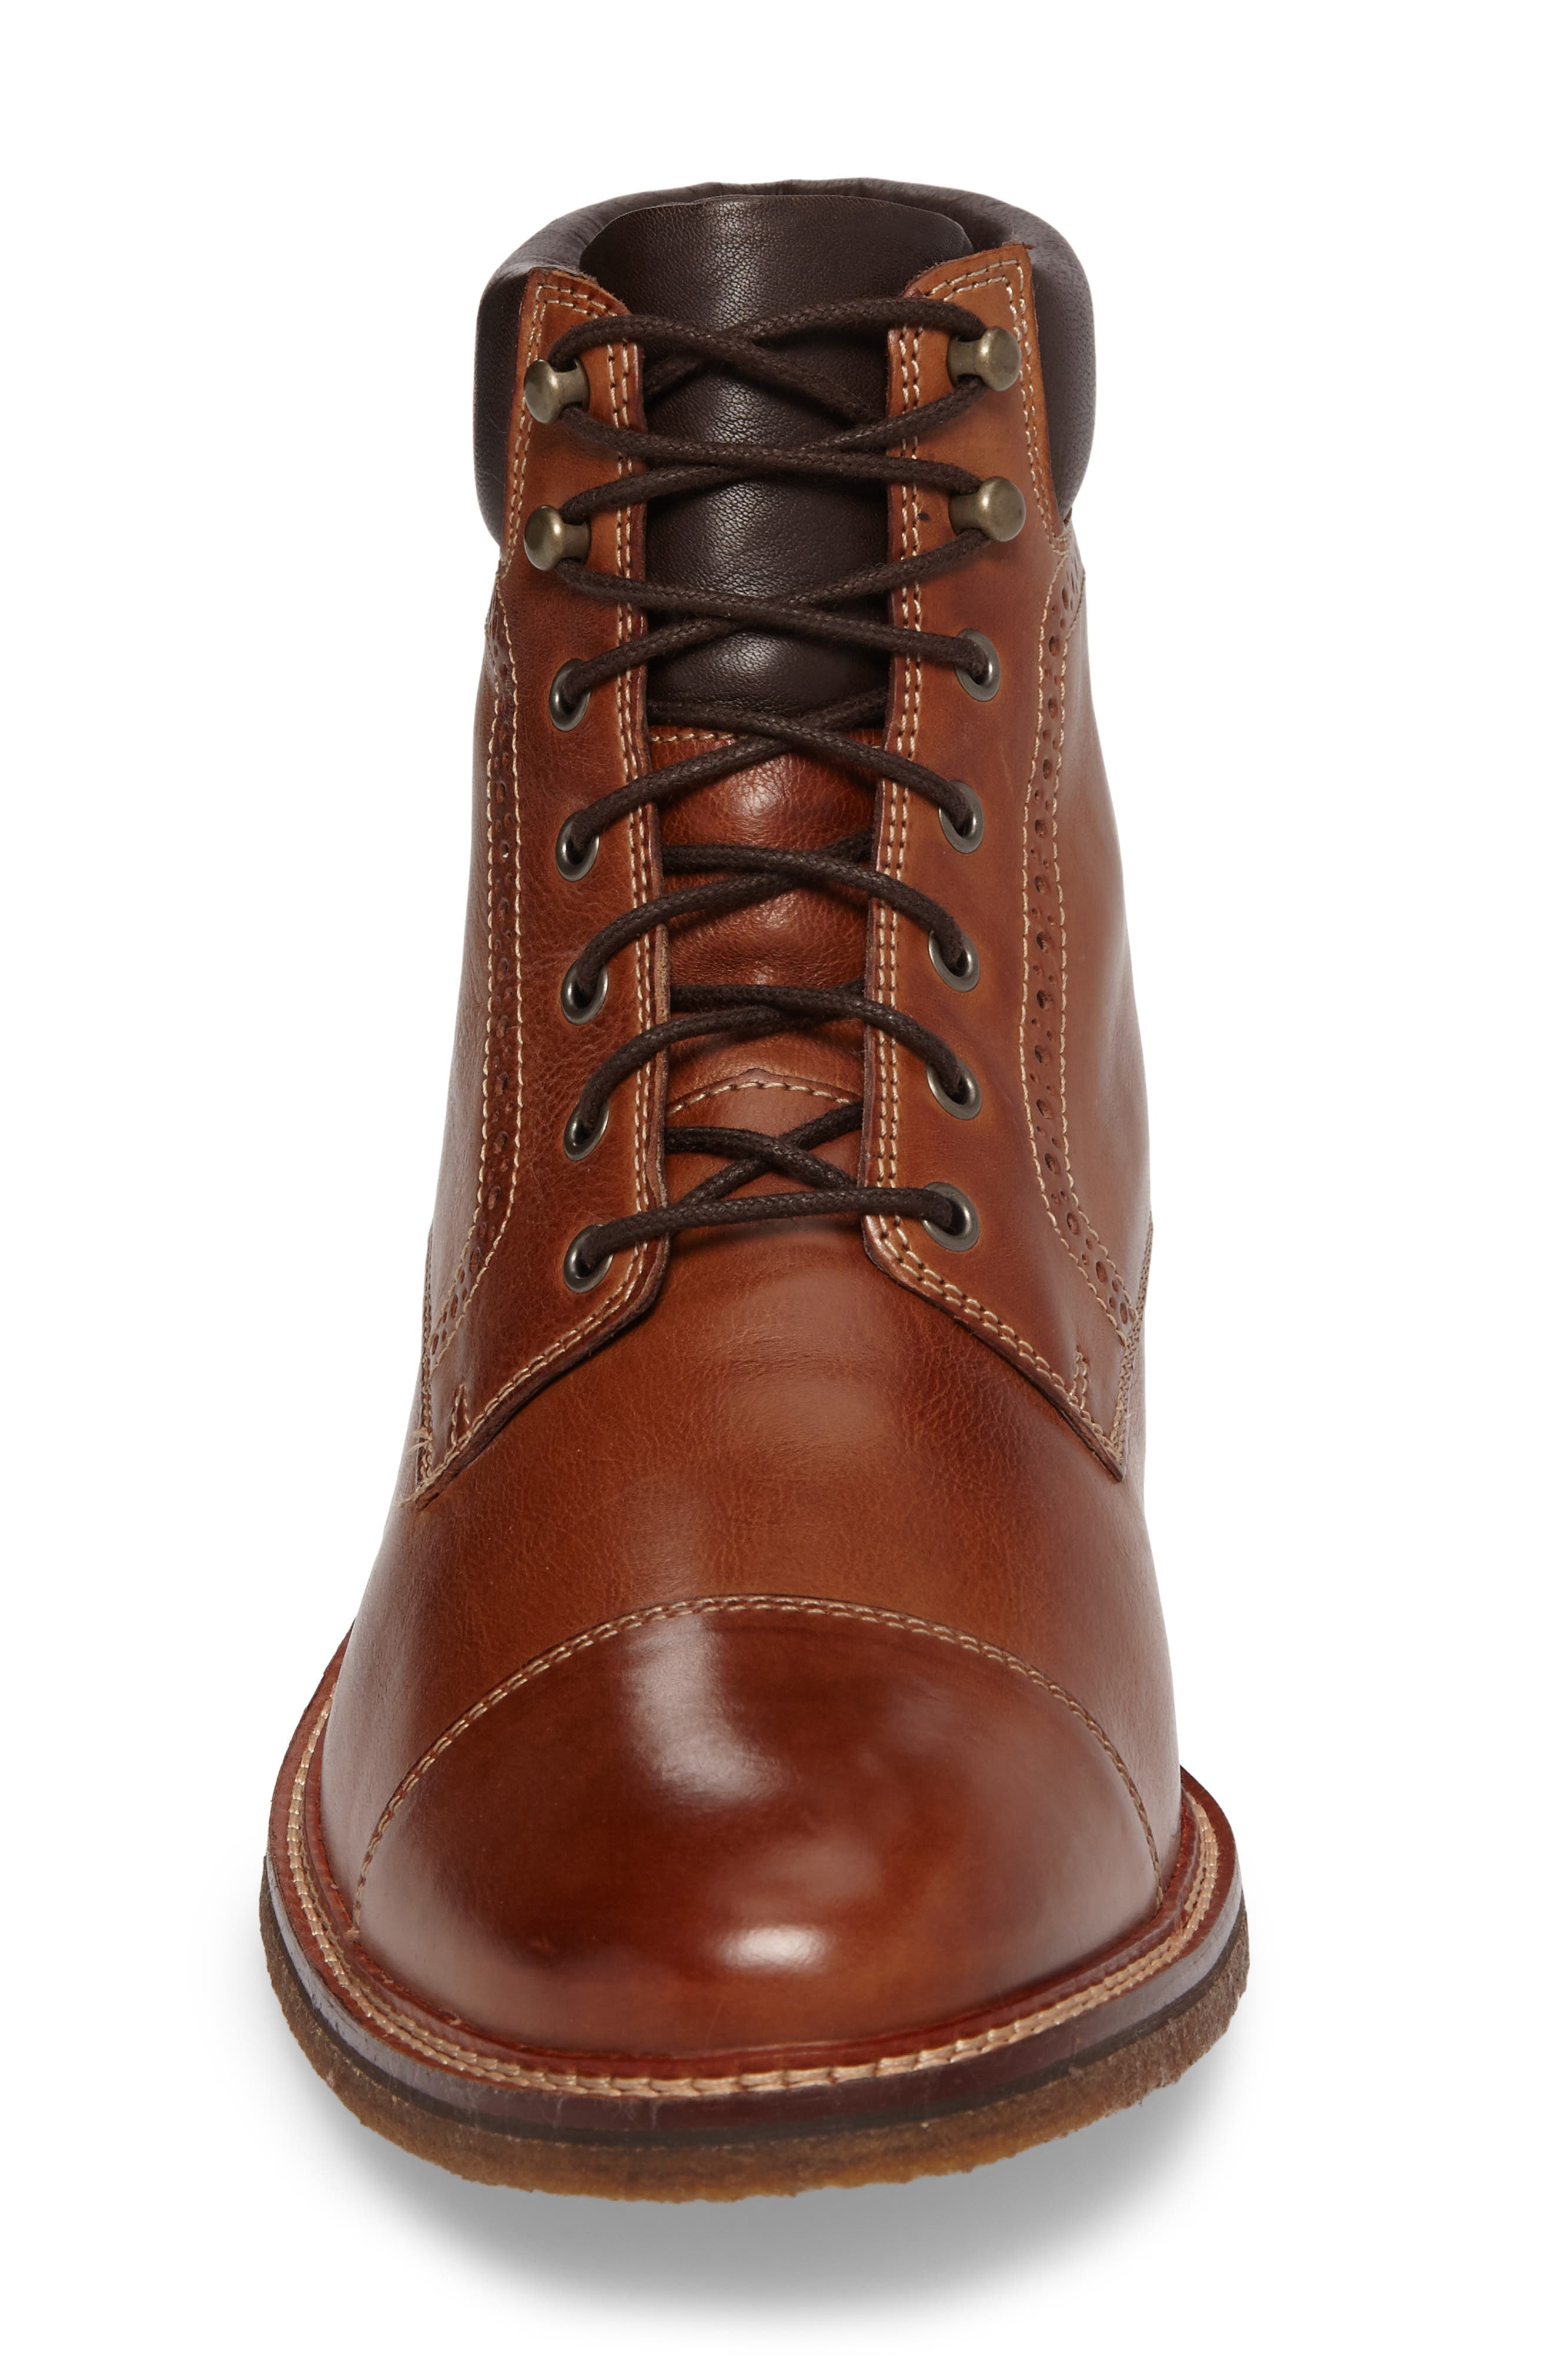 Forrester Cap Toe Boot,                             Alternate thumbnail 5, color,                             Tan Leather